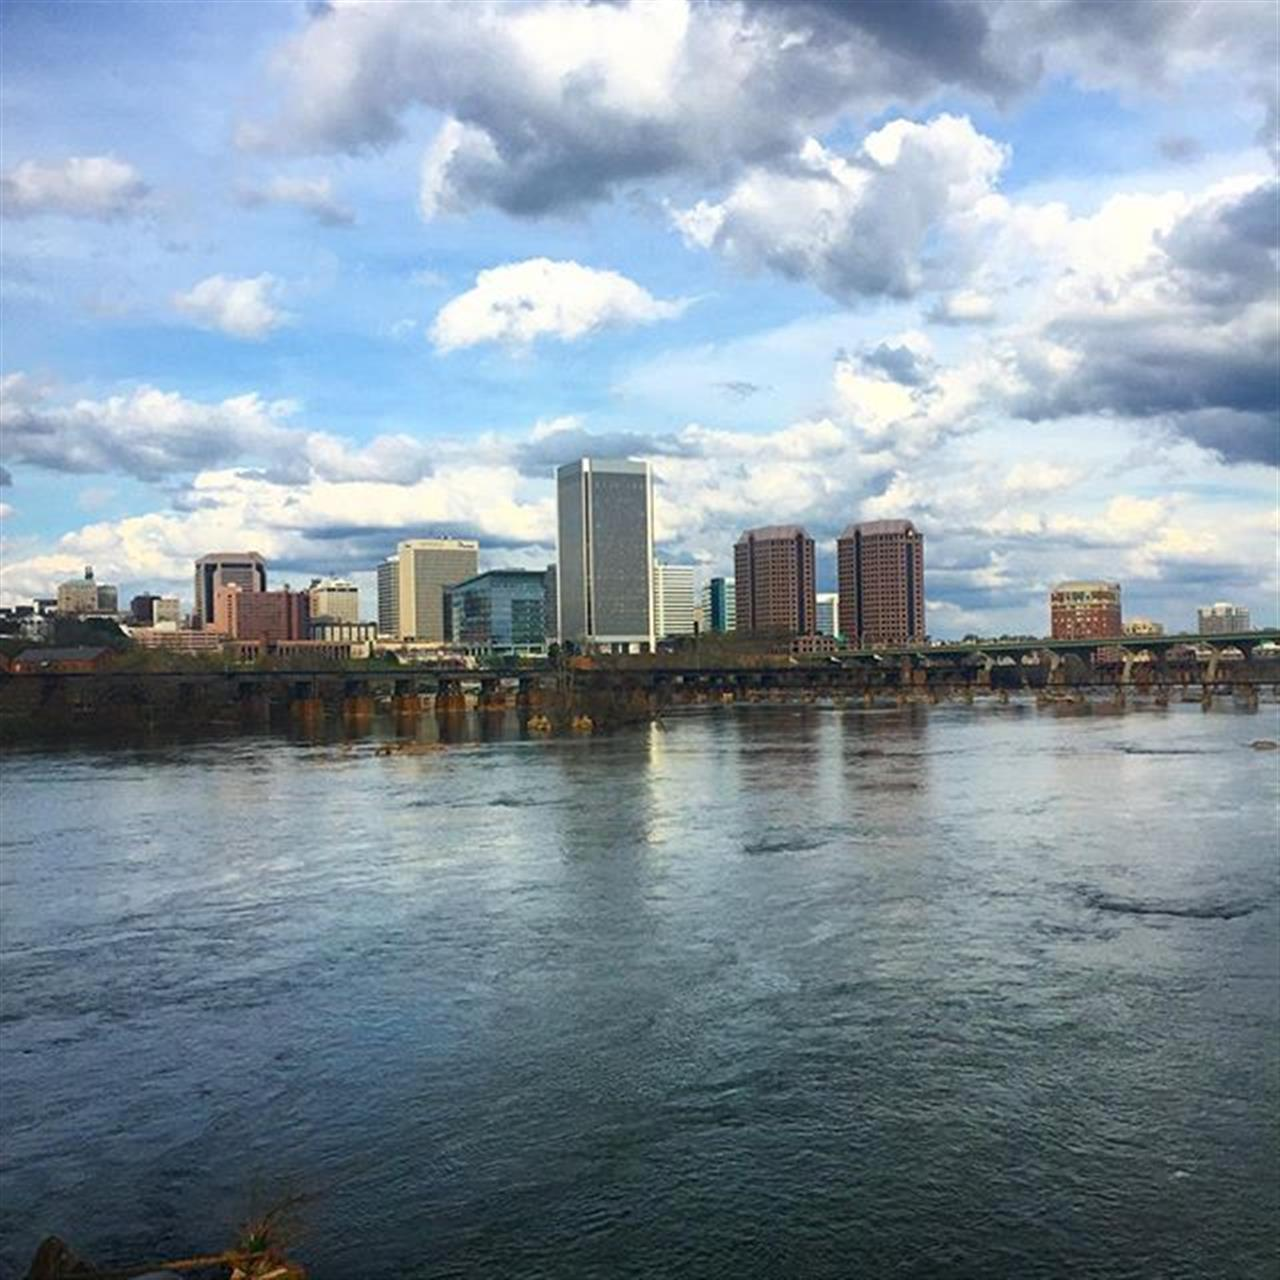 City views?? #rva #richmond #leadingrelocal #virginia #visitrichmond #va #visitvirginia #travel #clouds #jamesriver #city #skyline #river #belleisle #park #view